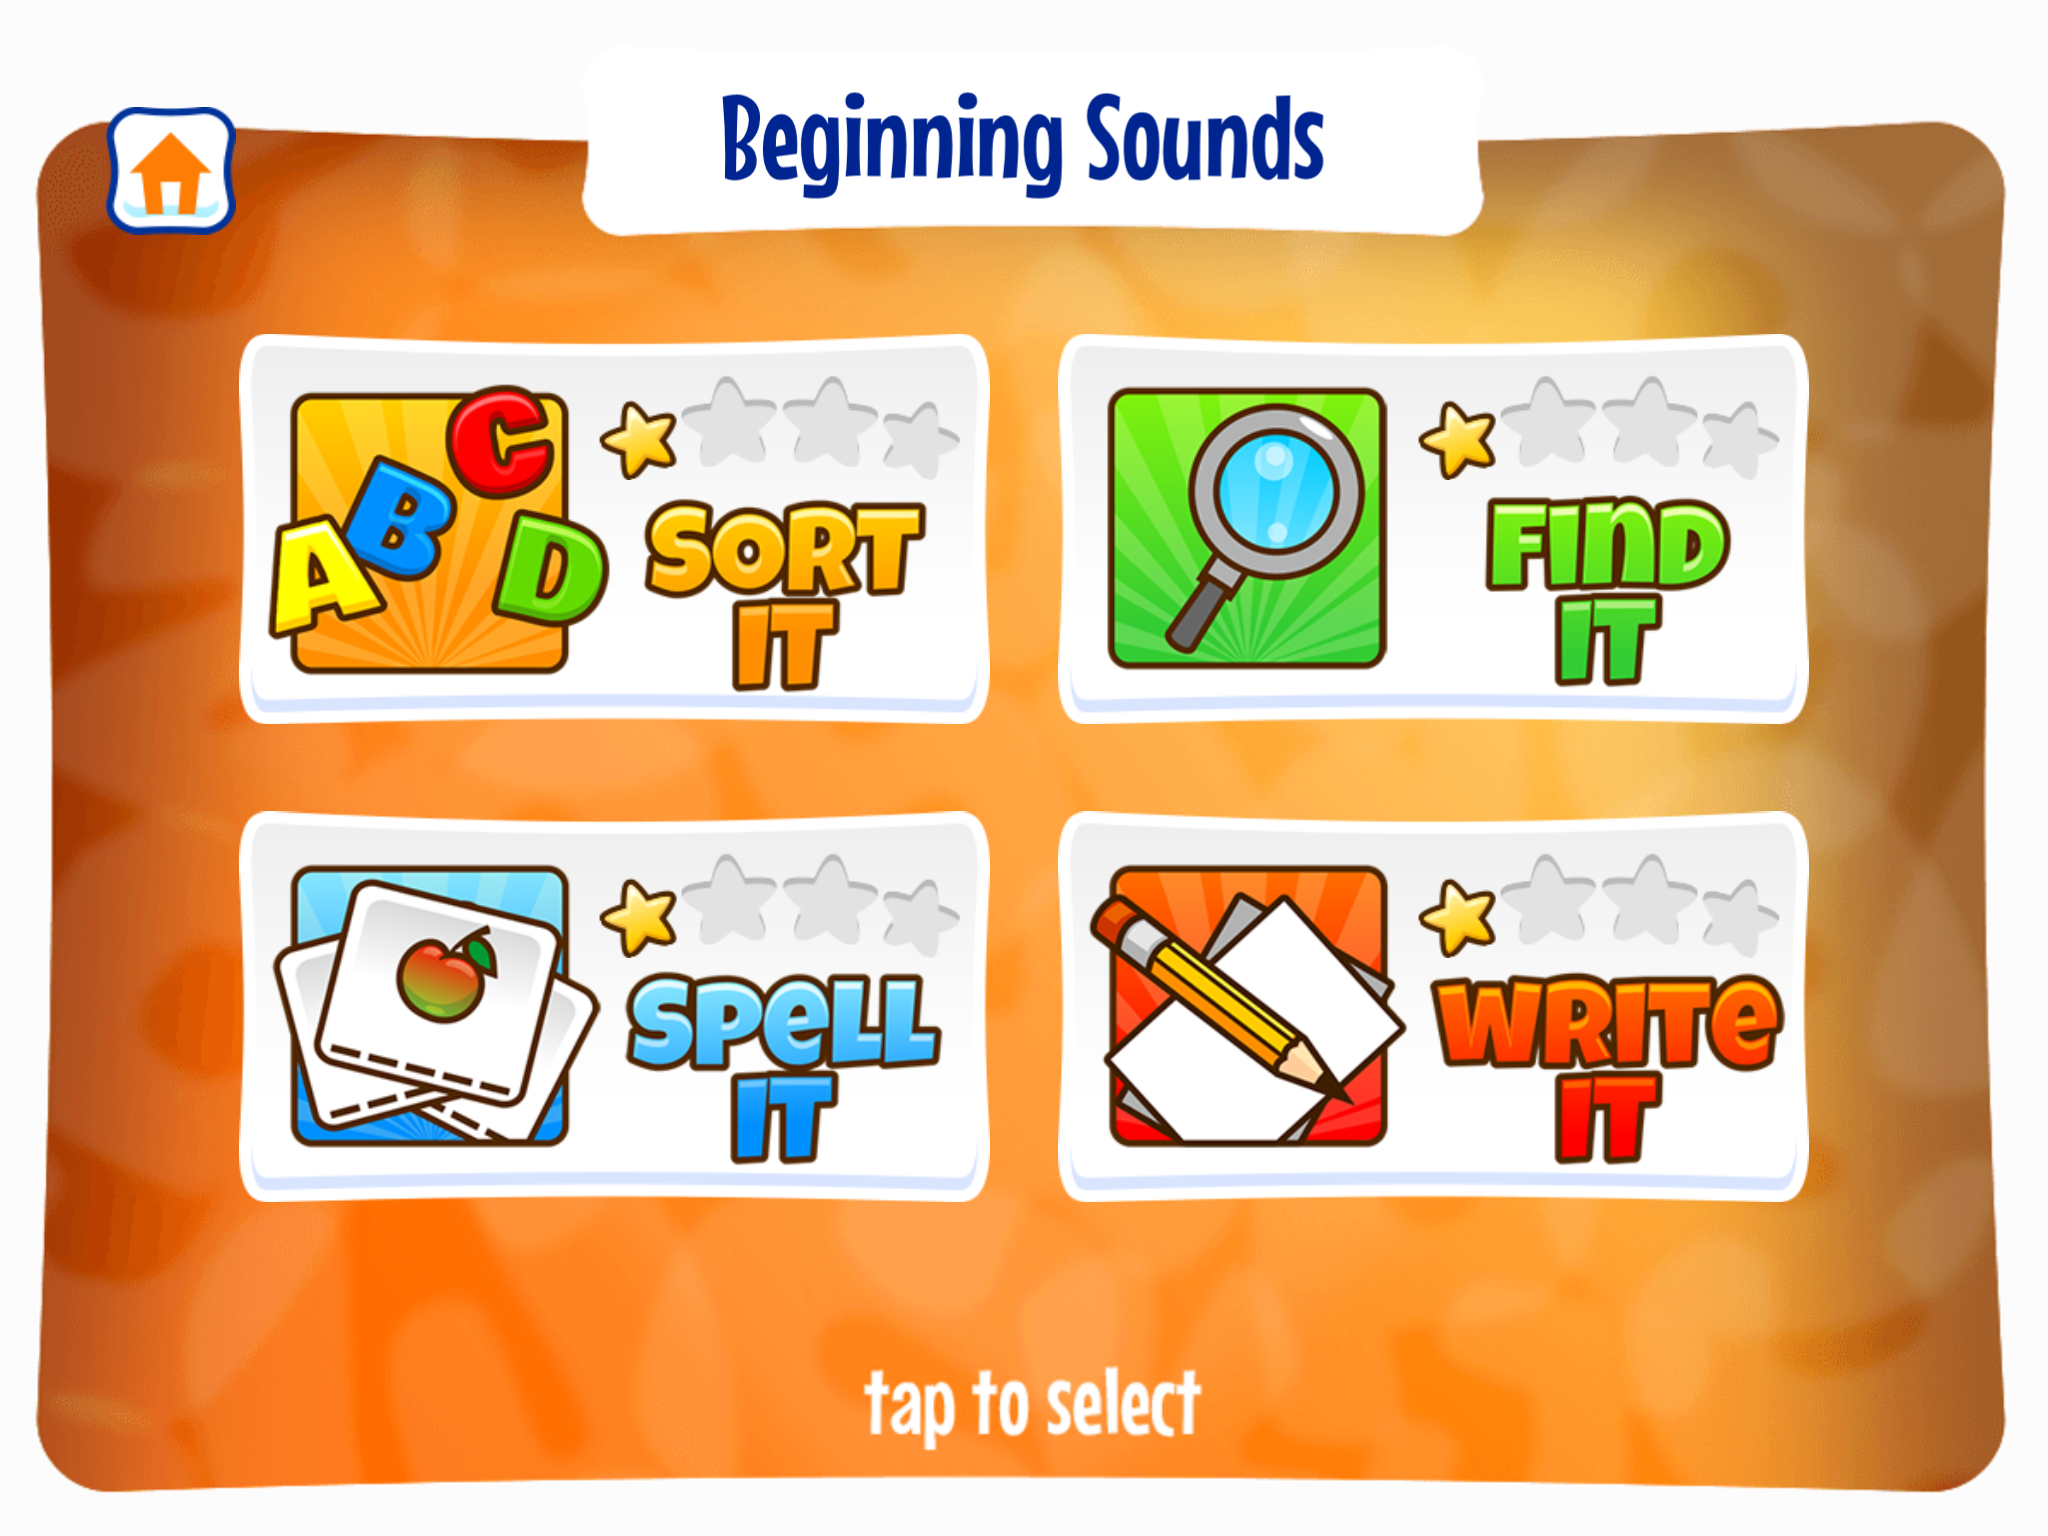 four activities within each level of Alphabet Sounds Learning App